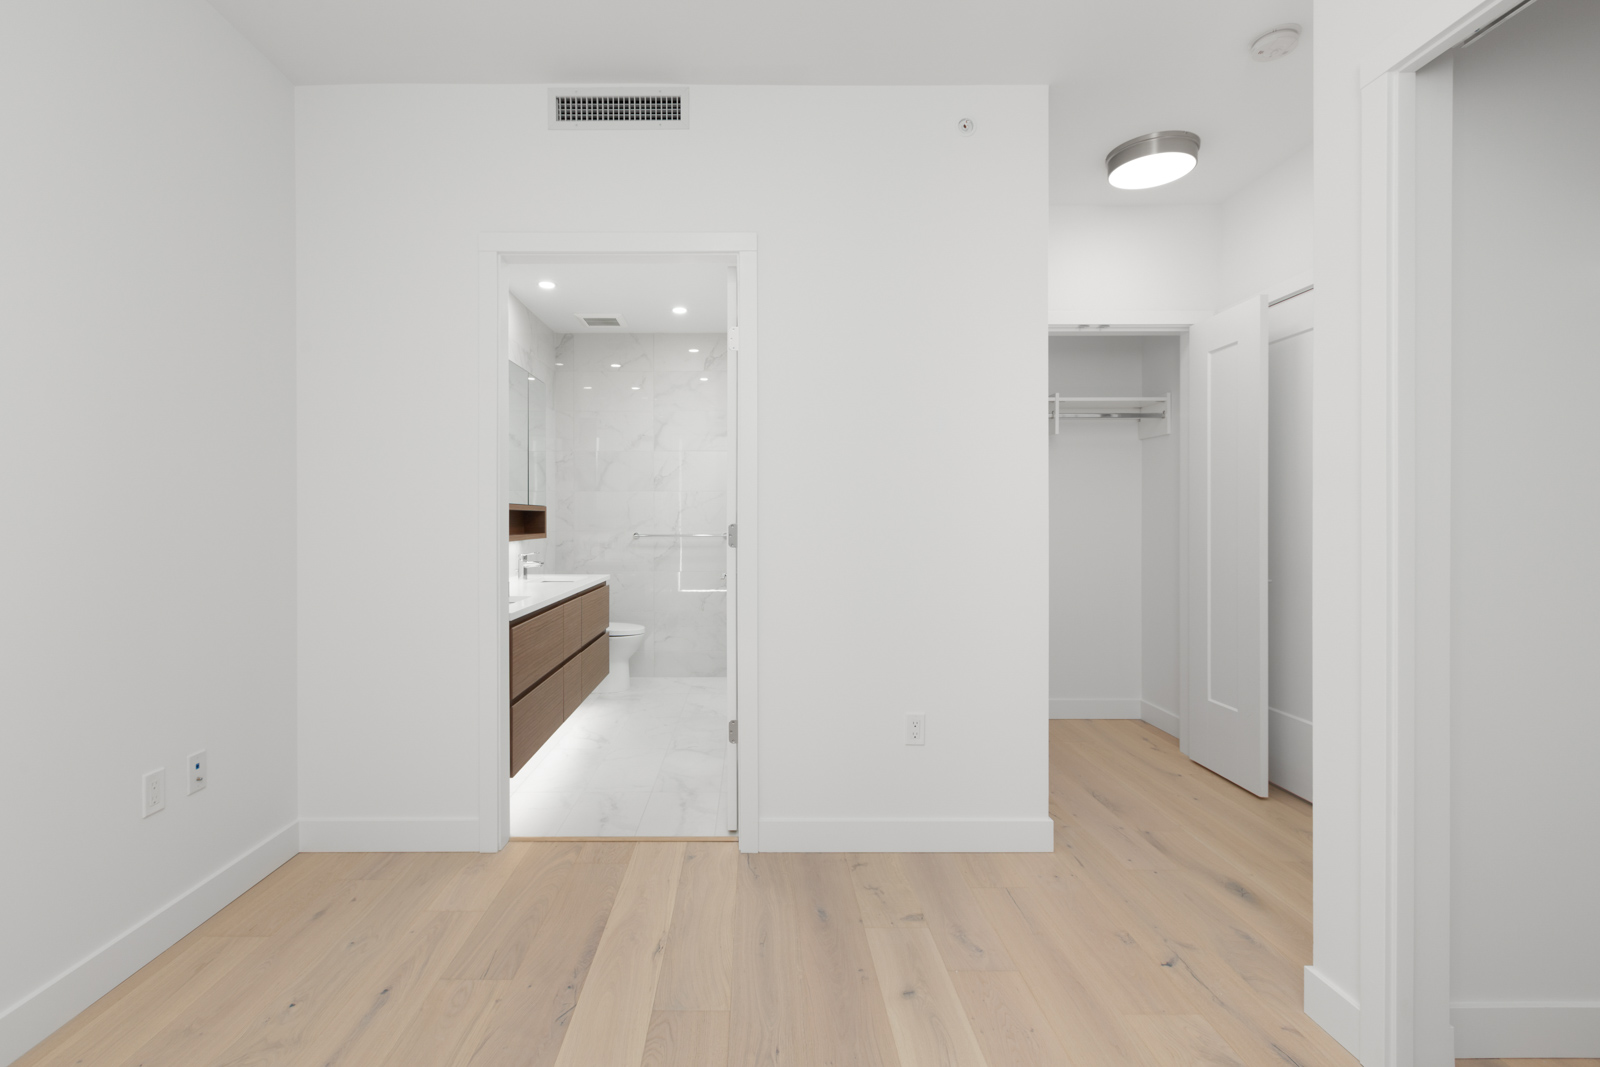 spacious bedroom with entrance to bathroom and natural sunlight and light wooden flooring in a rental condo in vancouver at the parker on elizabeth street managed by birds nest properties